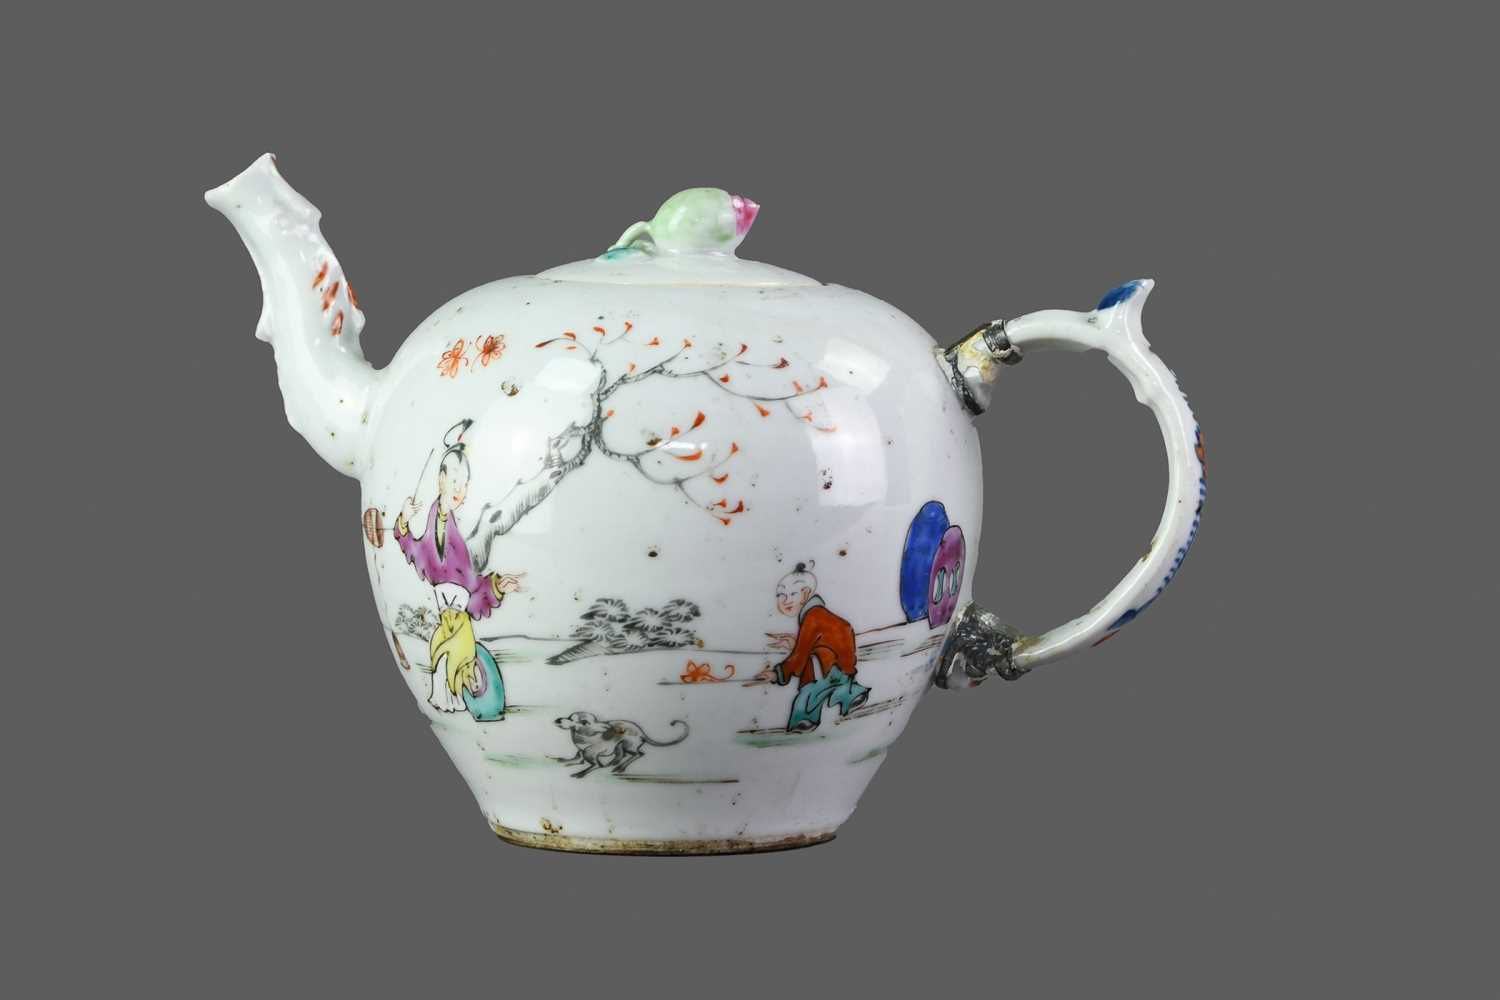 Lot 16 - A 19TH CENTURY CHINESE FAMILLE ROSE TEAPOT AND COVER